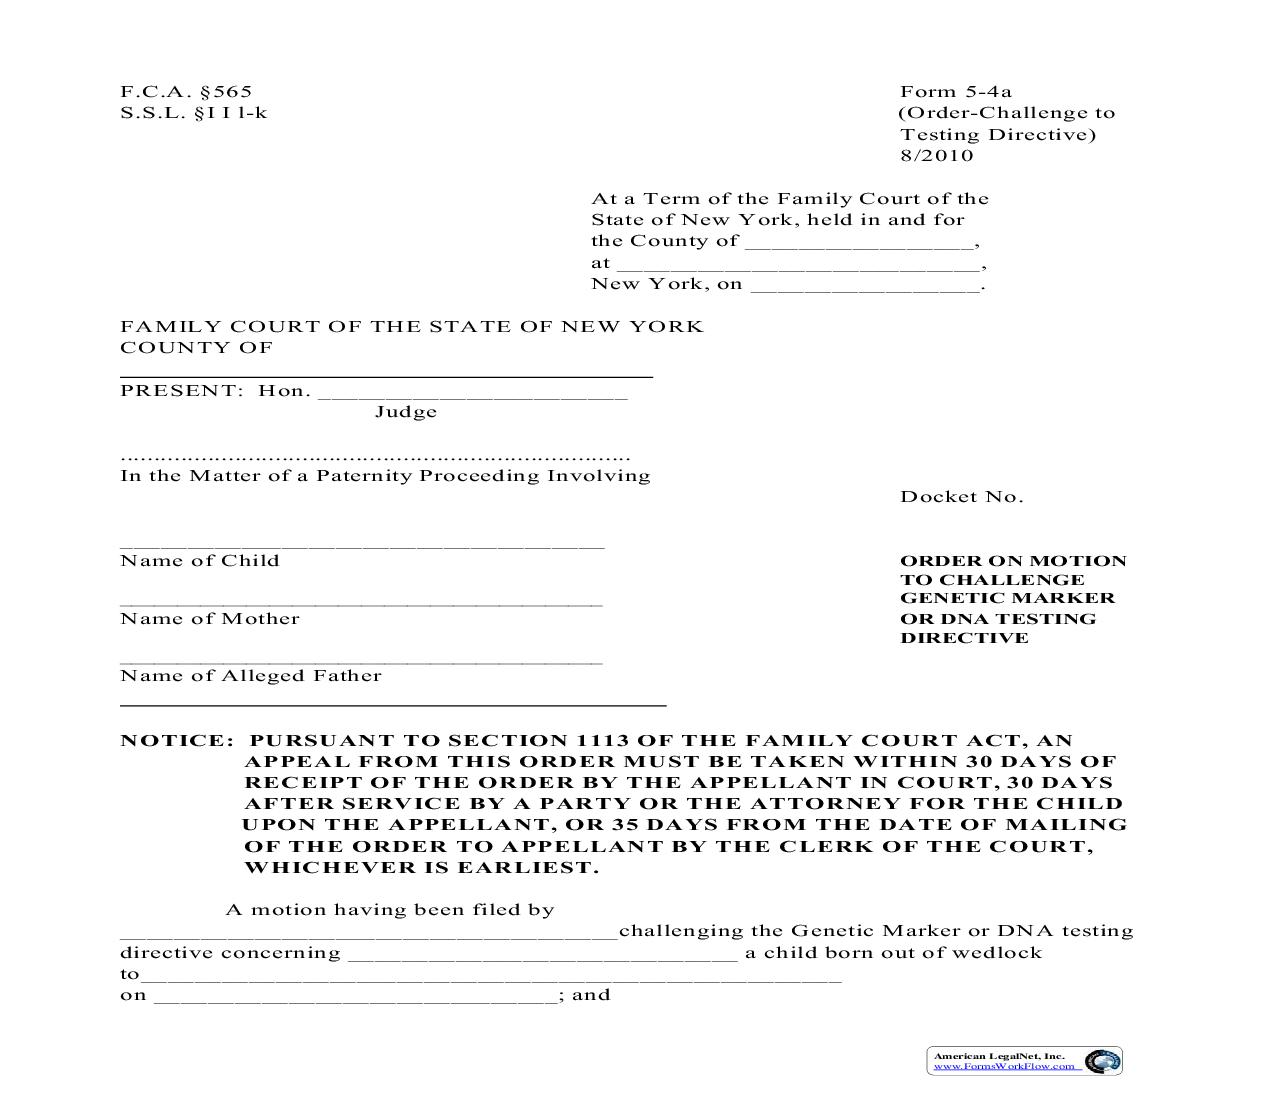 Order On Motion To Challenge Genetic Marker Or DNA Testing Directive {5-4a} | Pdf Fpdf Doc Docx | New York